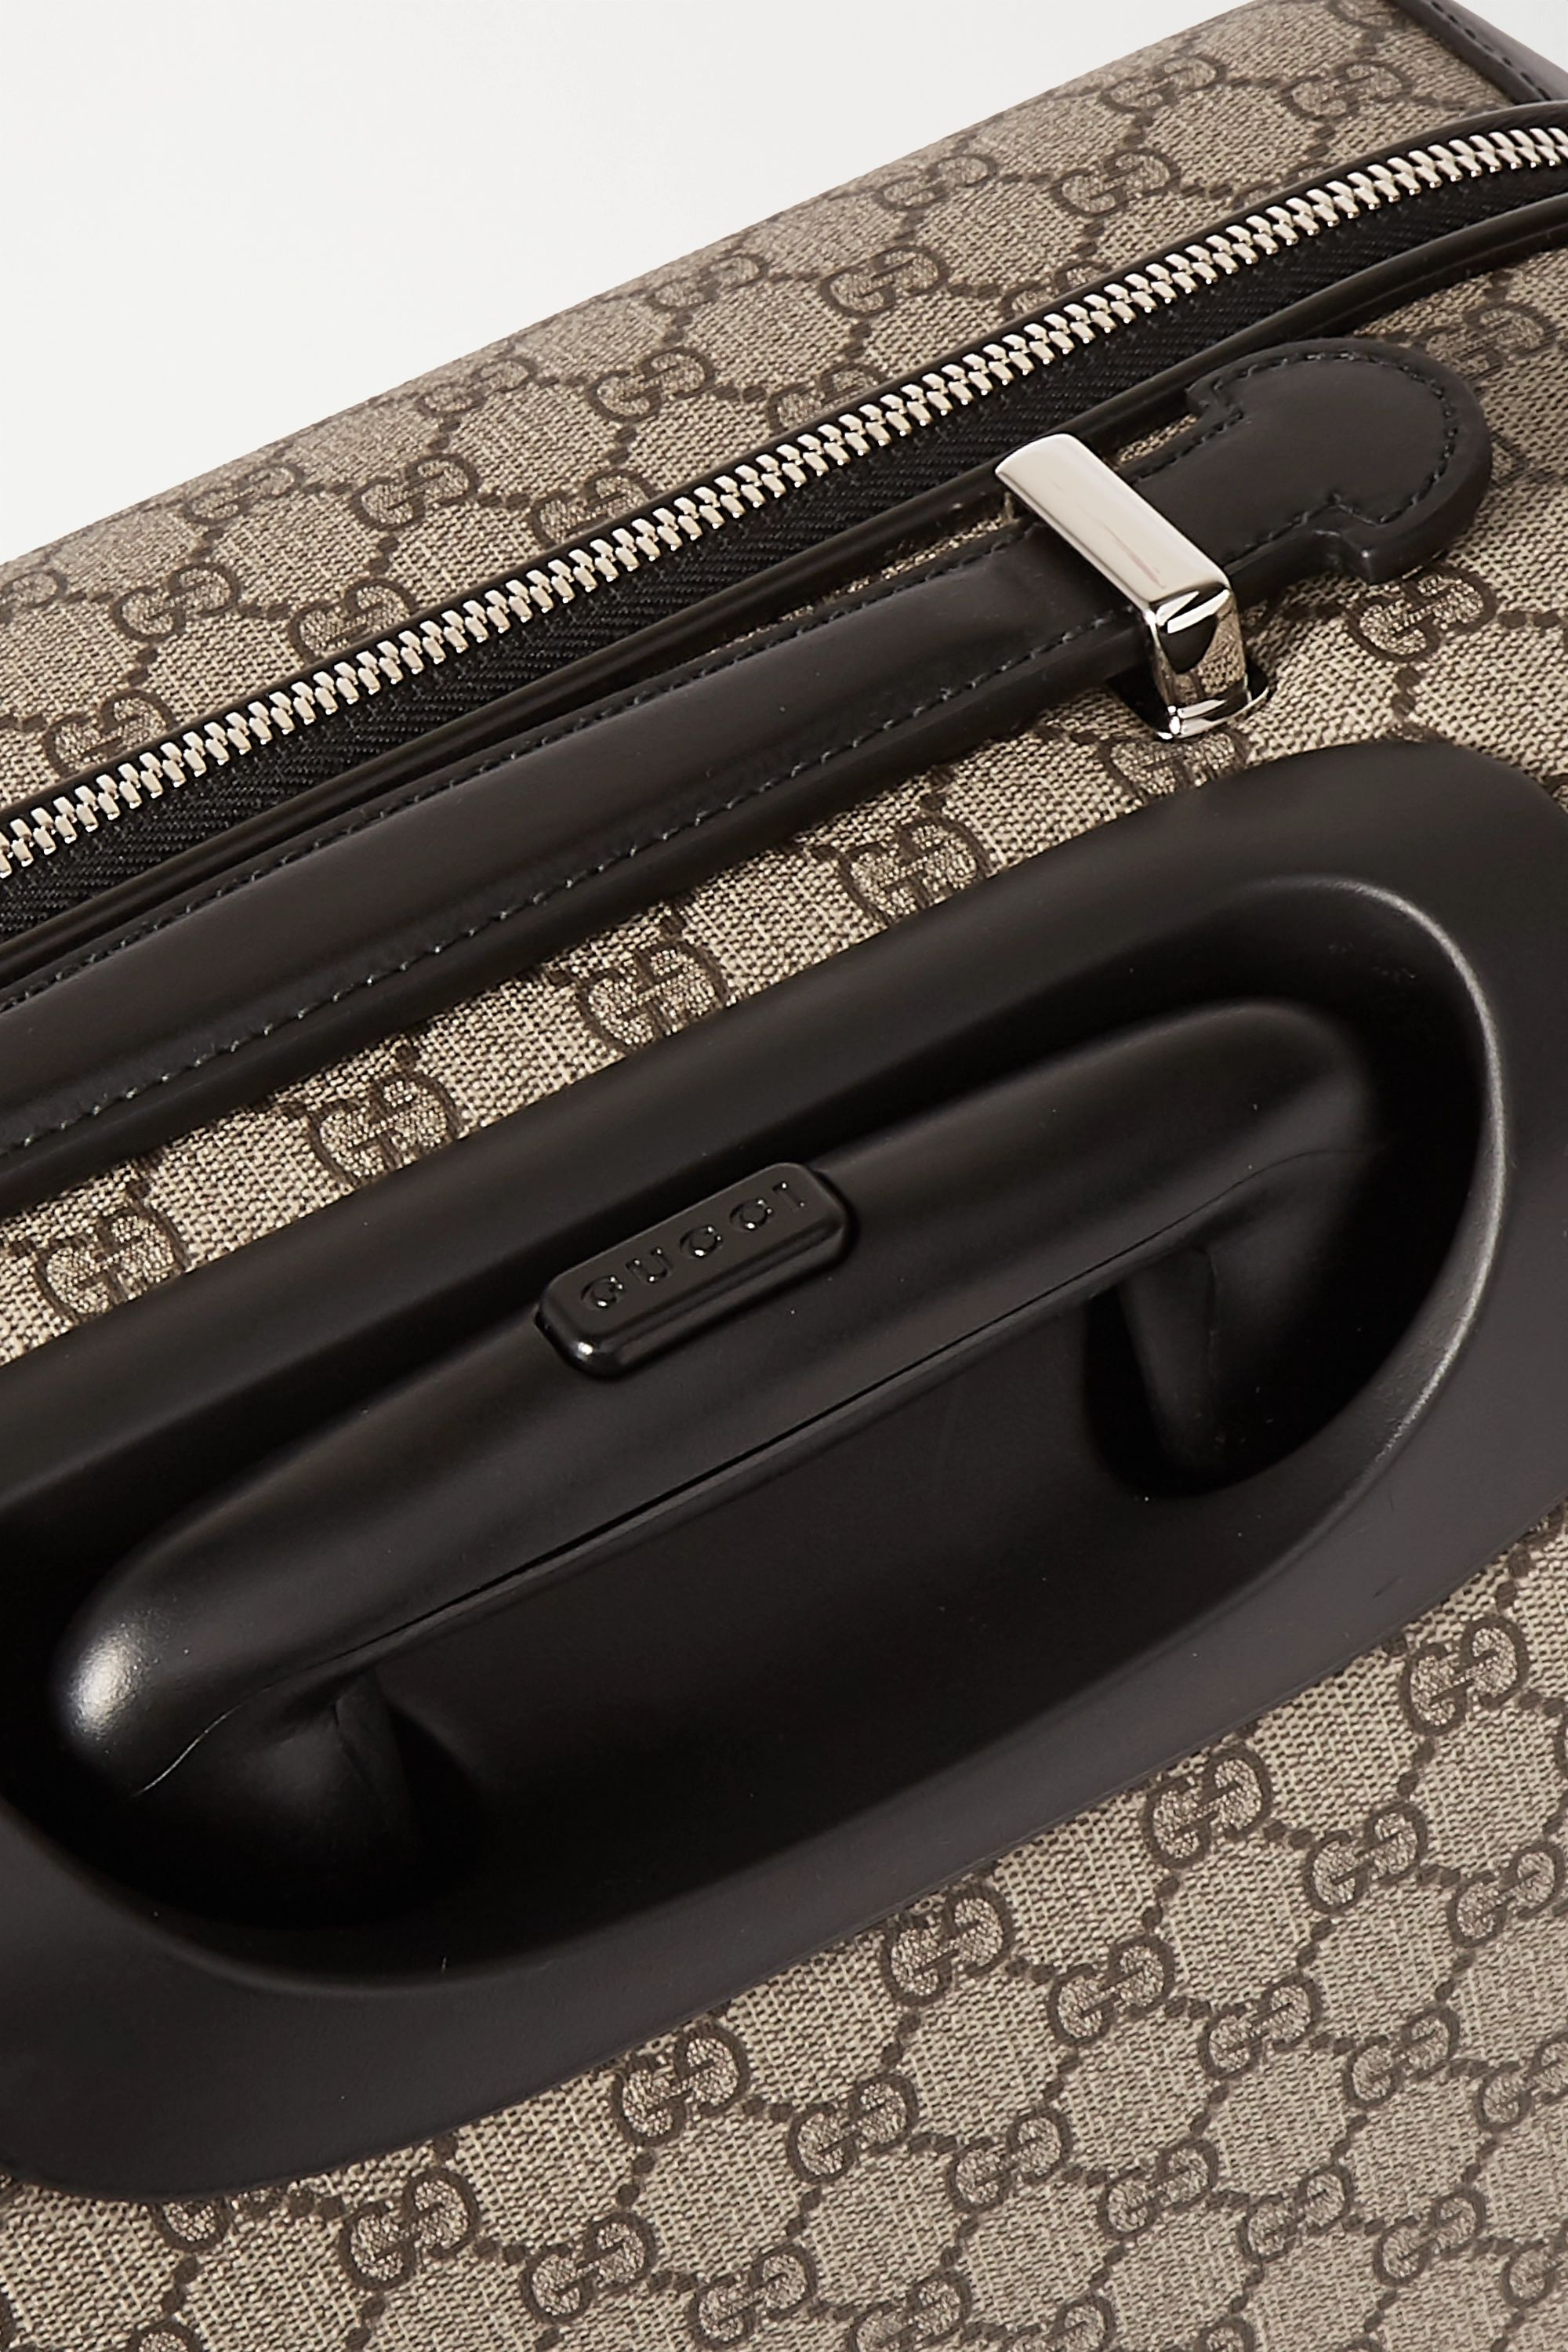 Gucci Grand Tourismo leather-trimmed printed coated-canvas suitcase